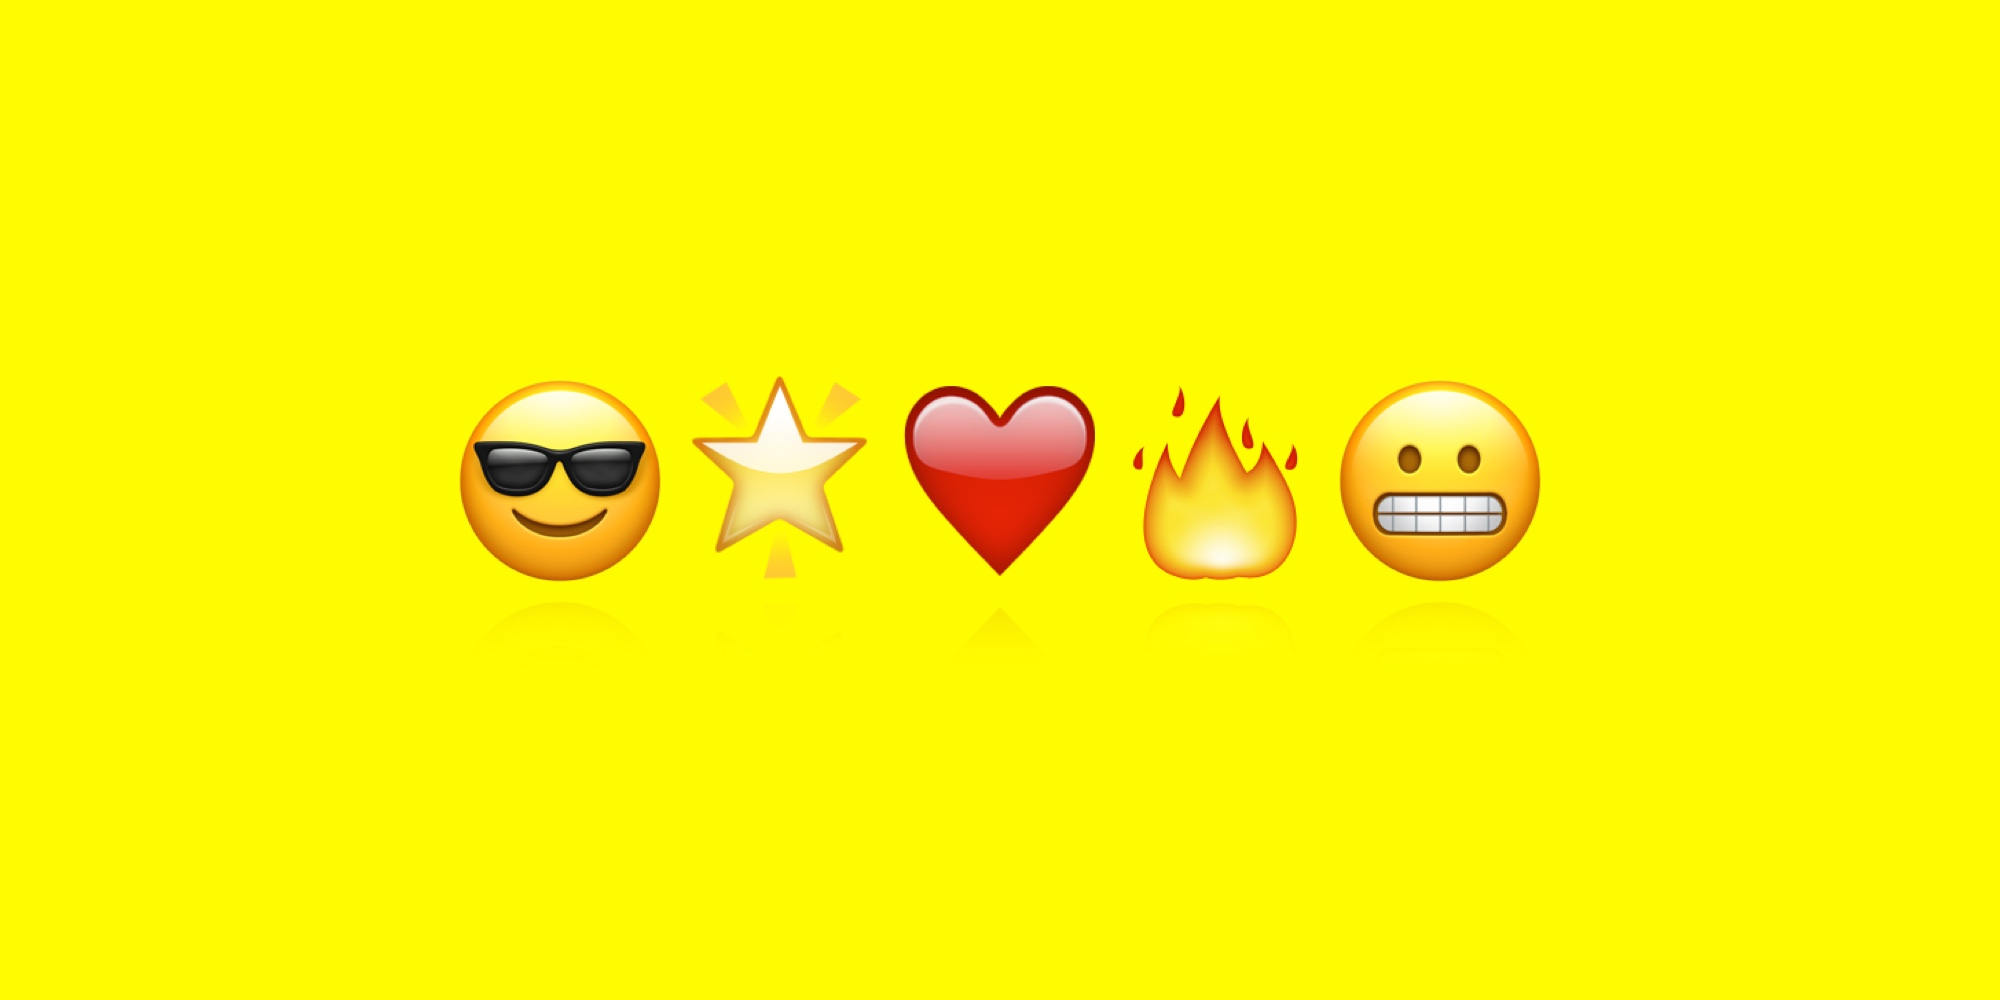 Snapchat emoji meanings everything you need to know - Snapchat Emoji Meanings Everything You Need To Know 12